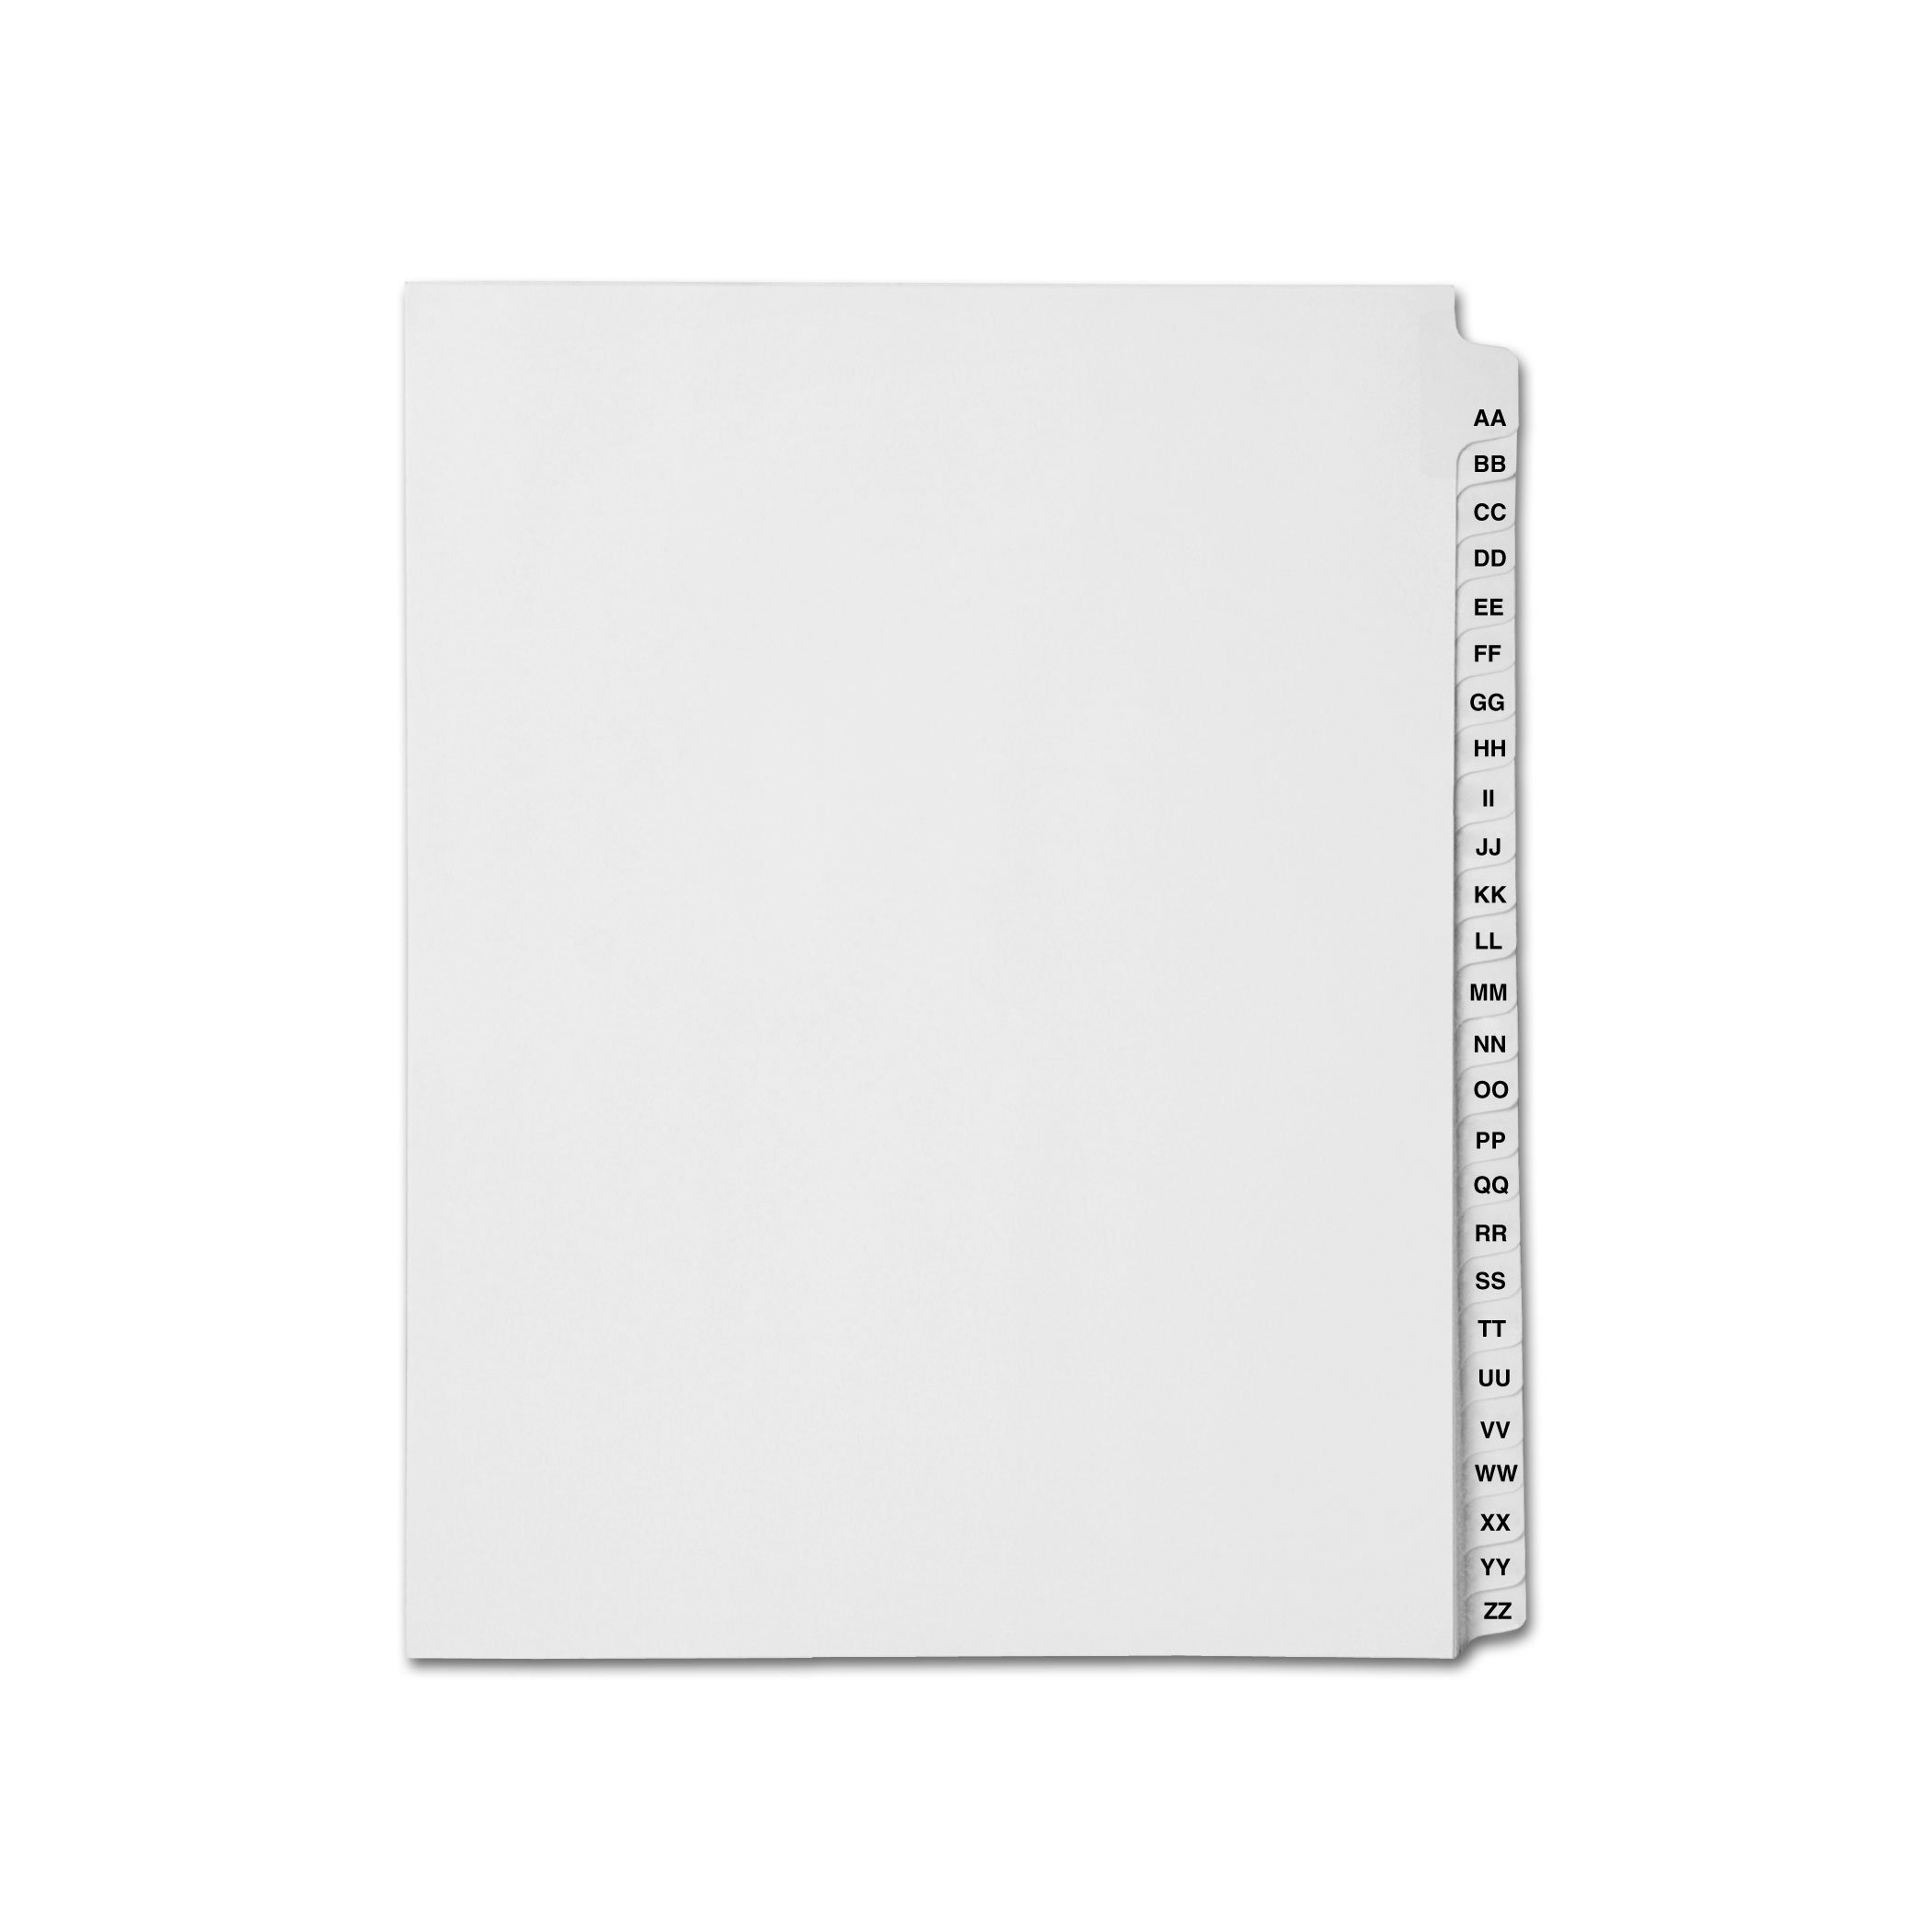 AMZfiling Collated Legal Index Tab Dividers, Compatible with Avery- Alphabet AA-ZZ, Letter Size, White, Side Tabs (26 Sheets/pkg)